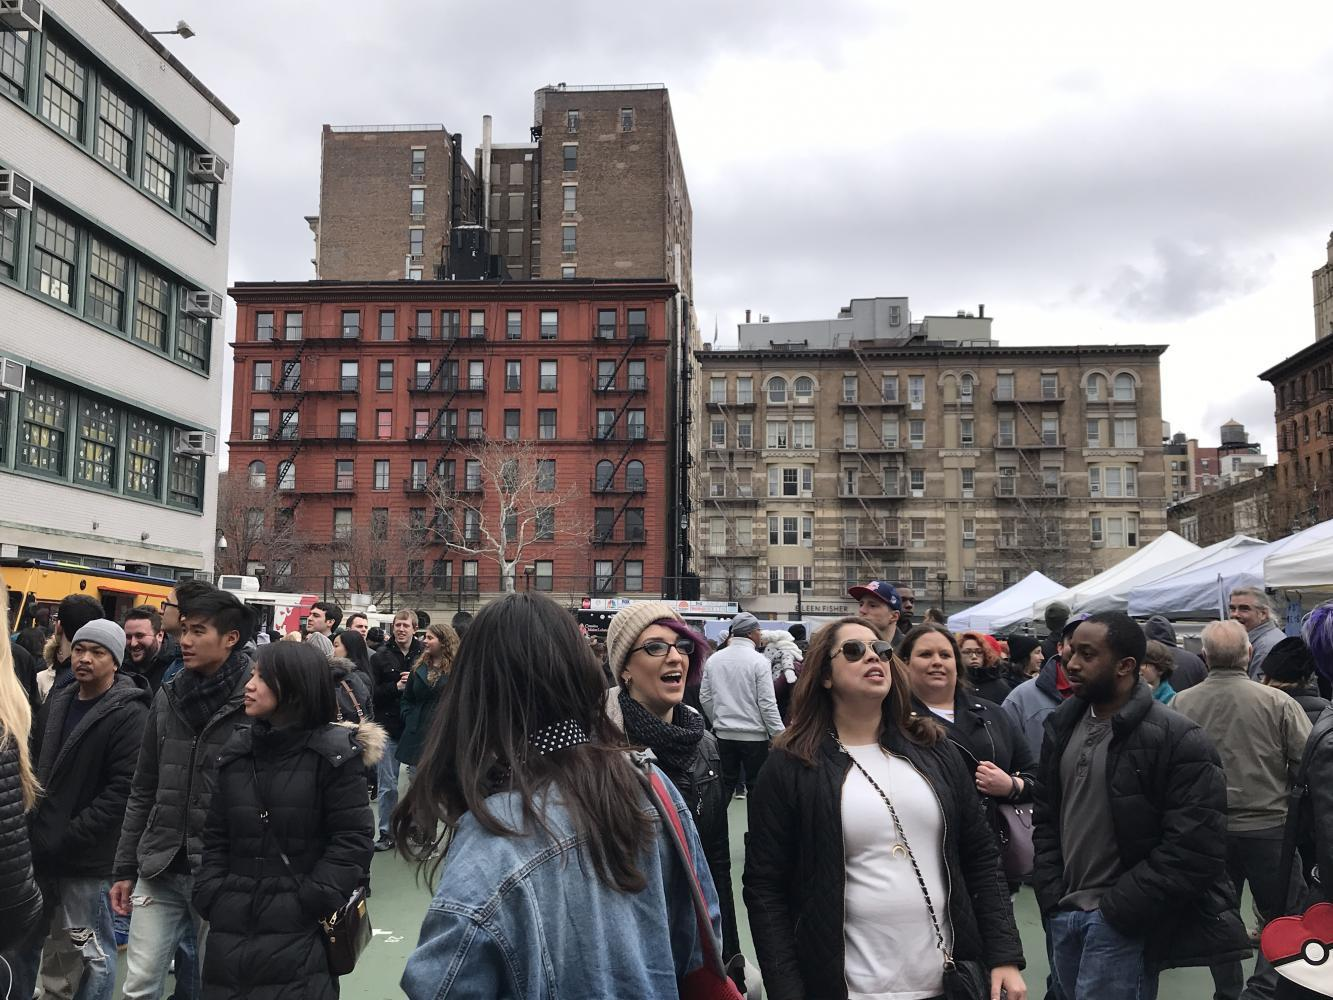 Delicious foods found at the NYC Food Truck Fest 2018